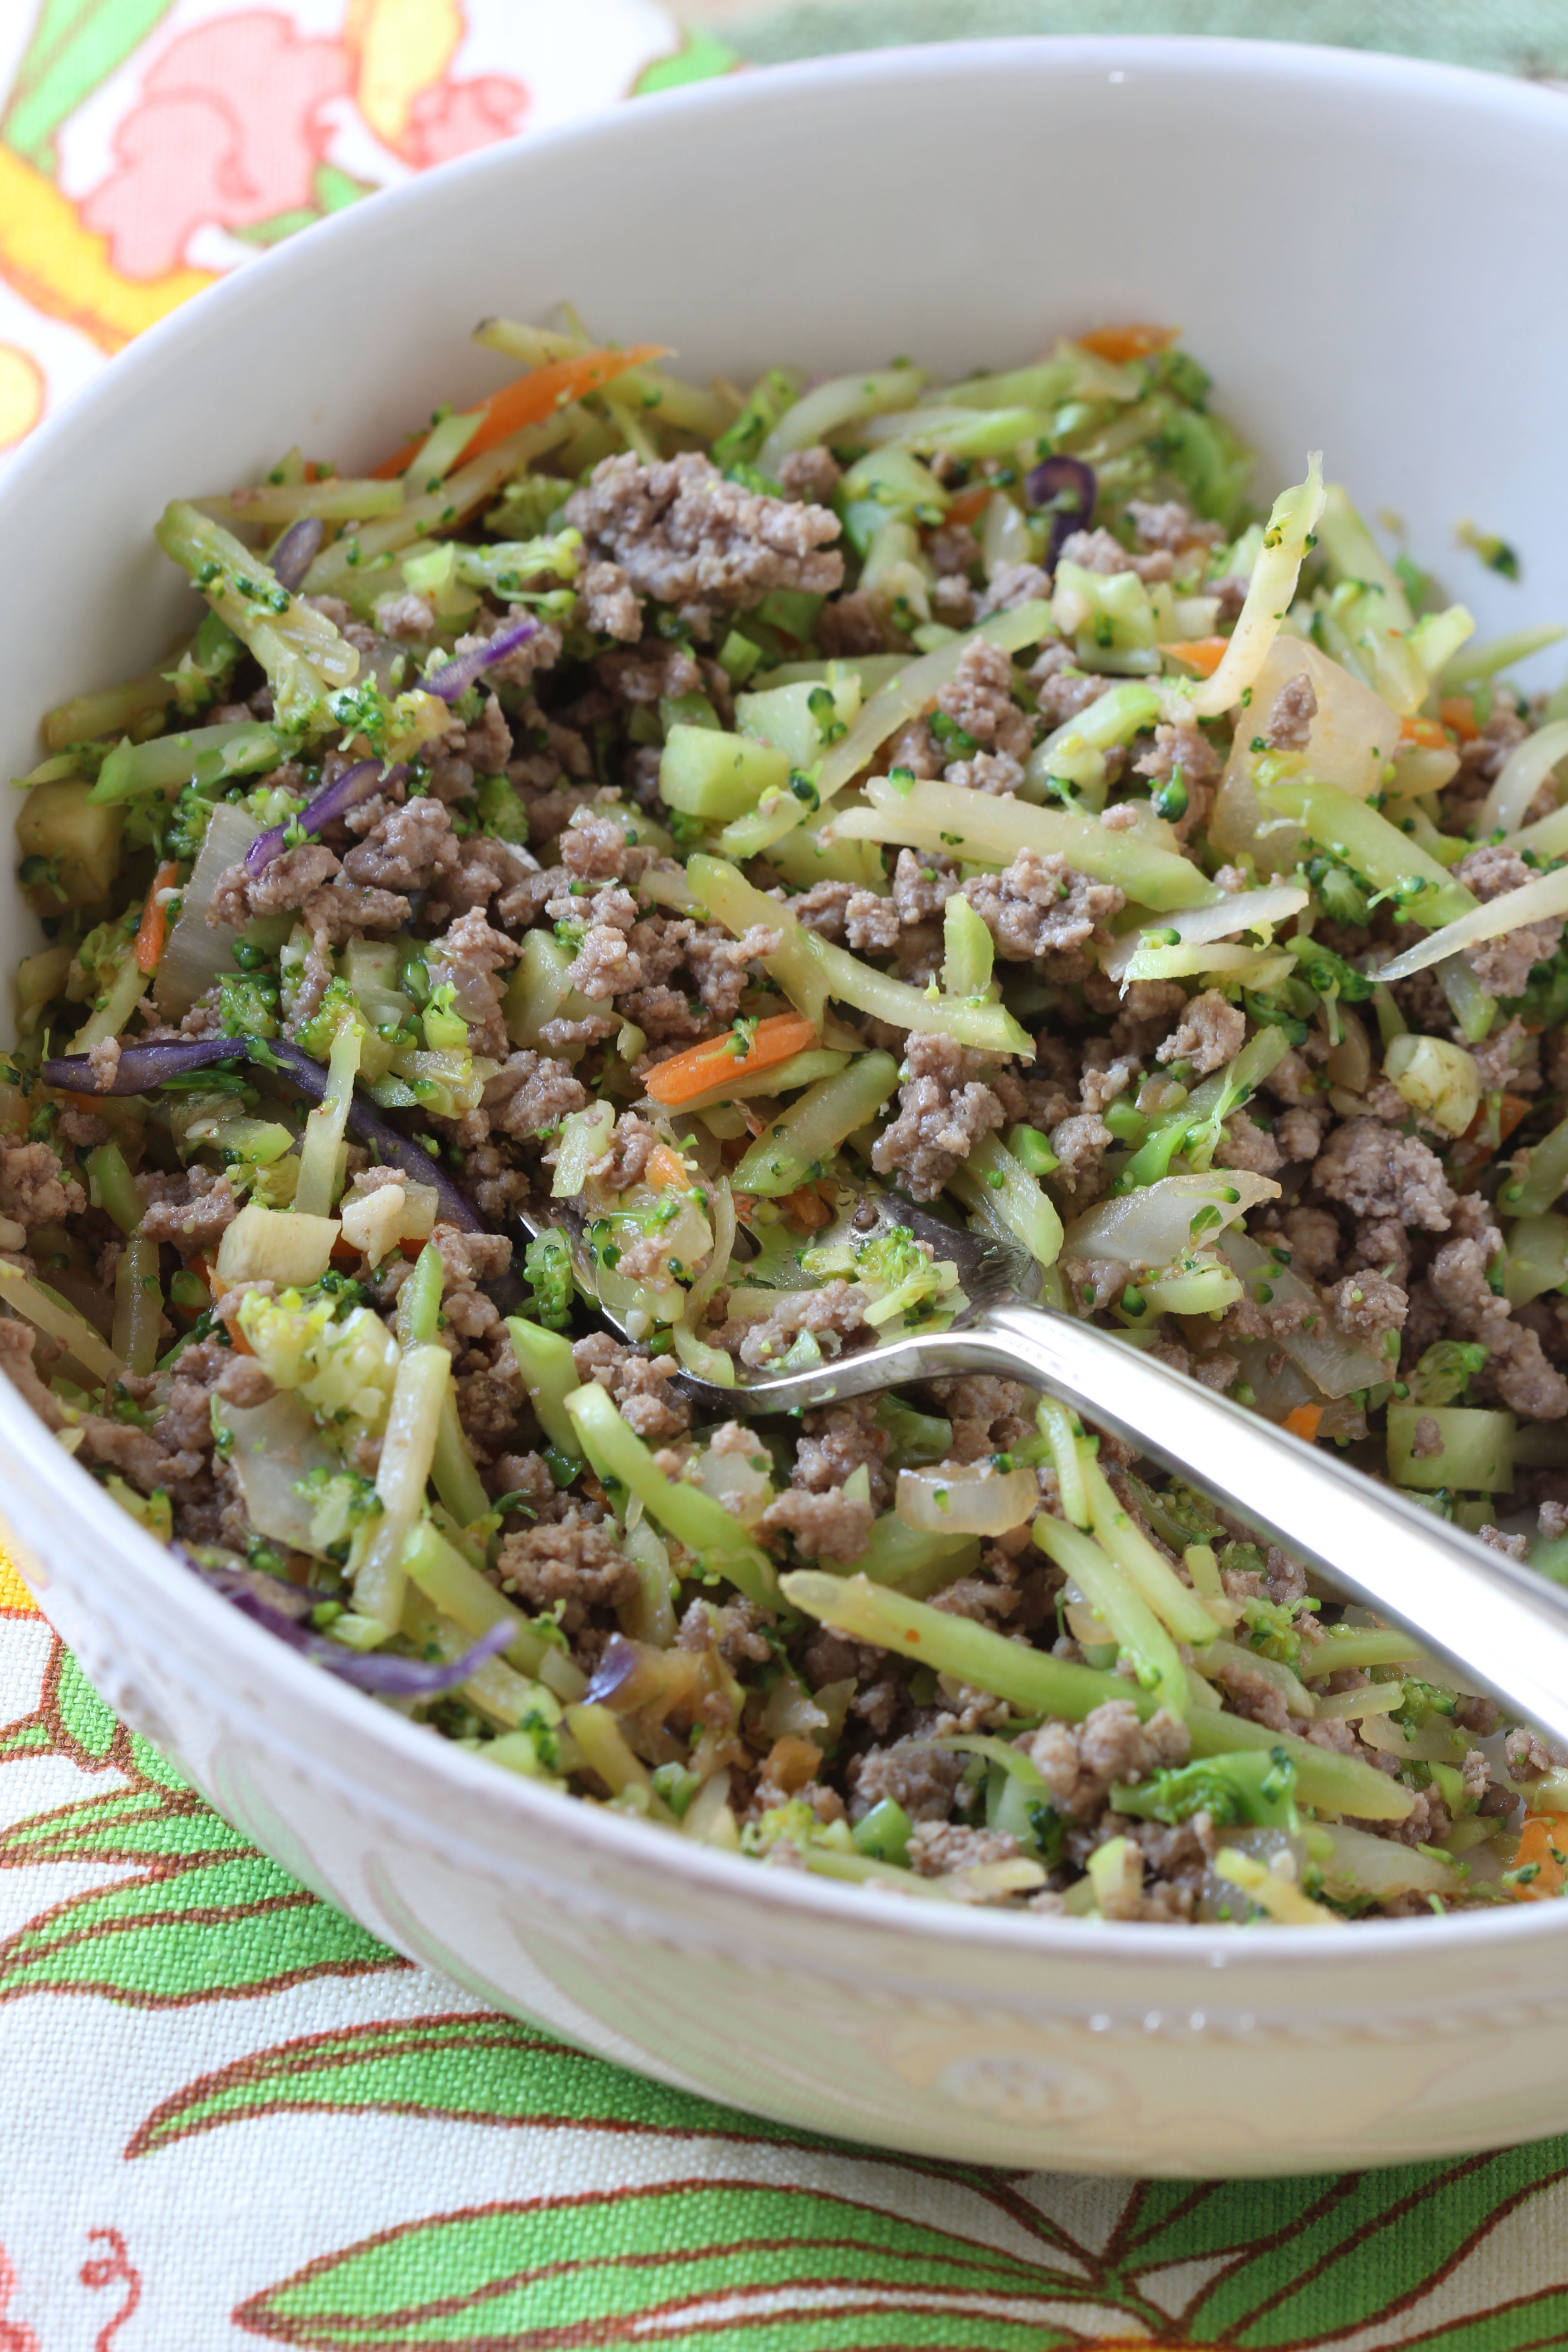 Ridgely Brode cooks up a batch of Crack Slaw , the healthier alternative to take out food, with lots of veggies her blog Ridgely's Radar.